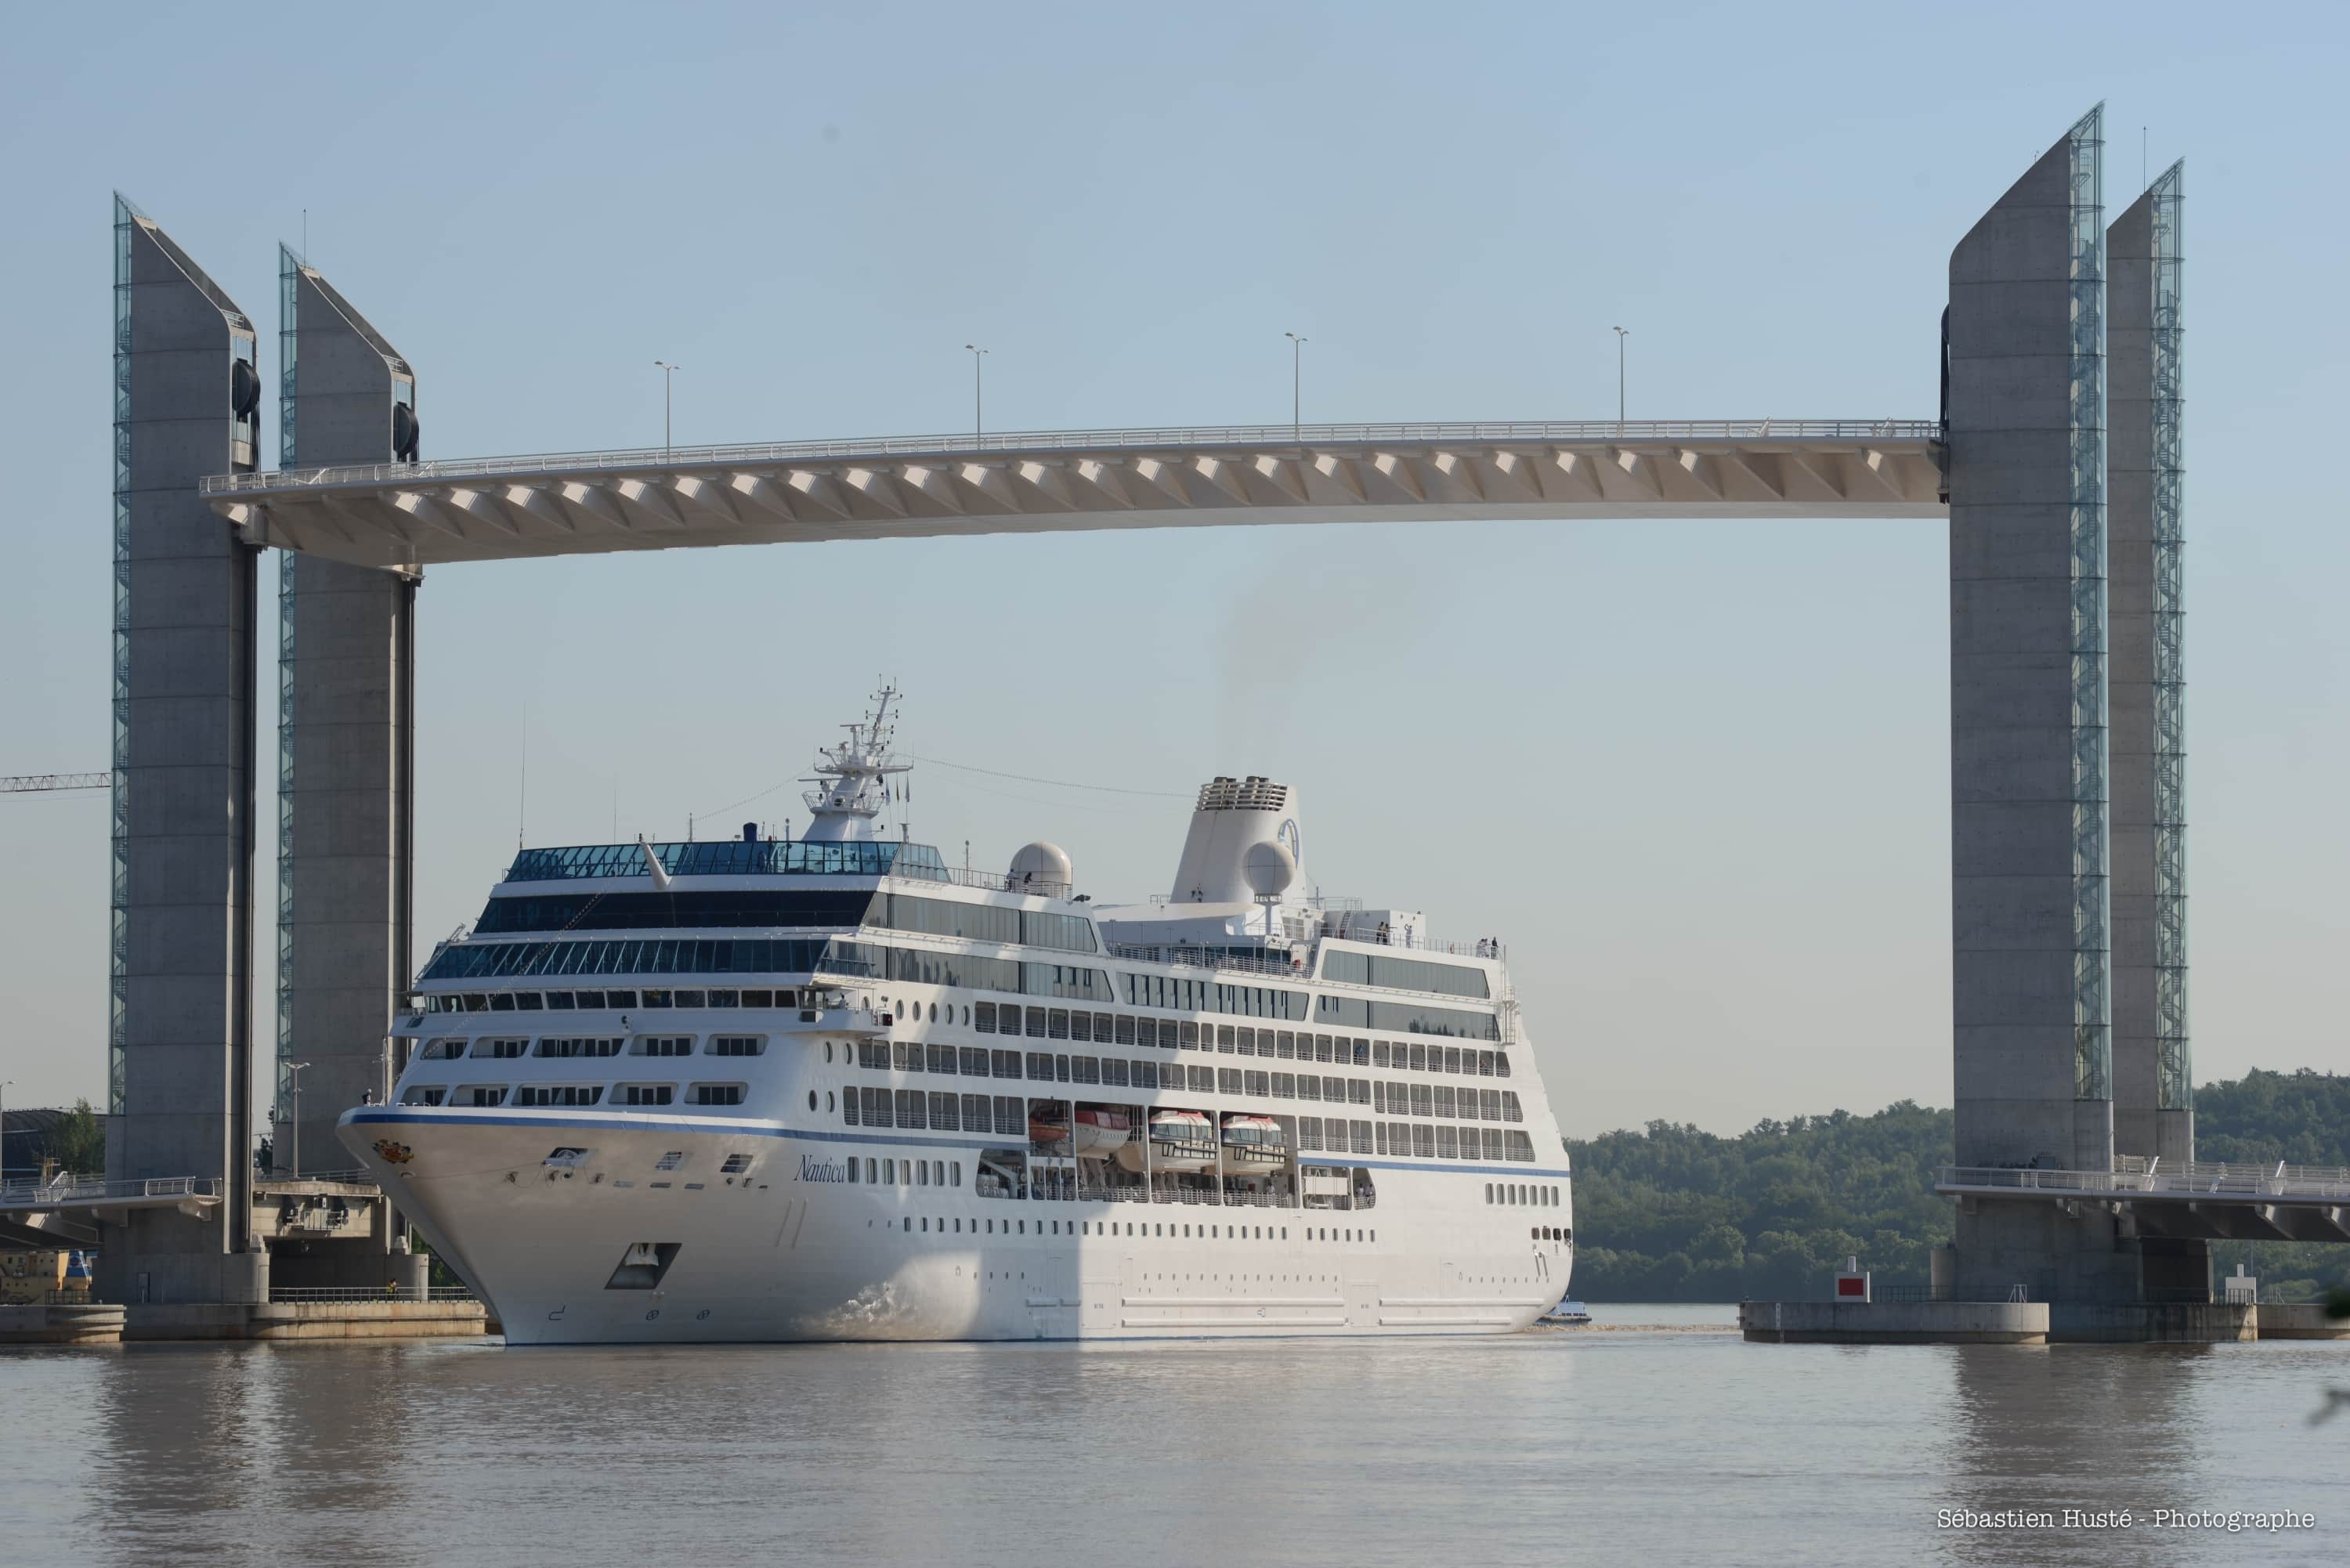 An easier access for larger ships into Bordeaux city center